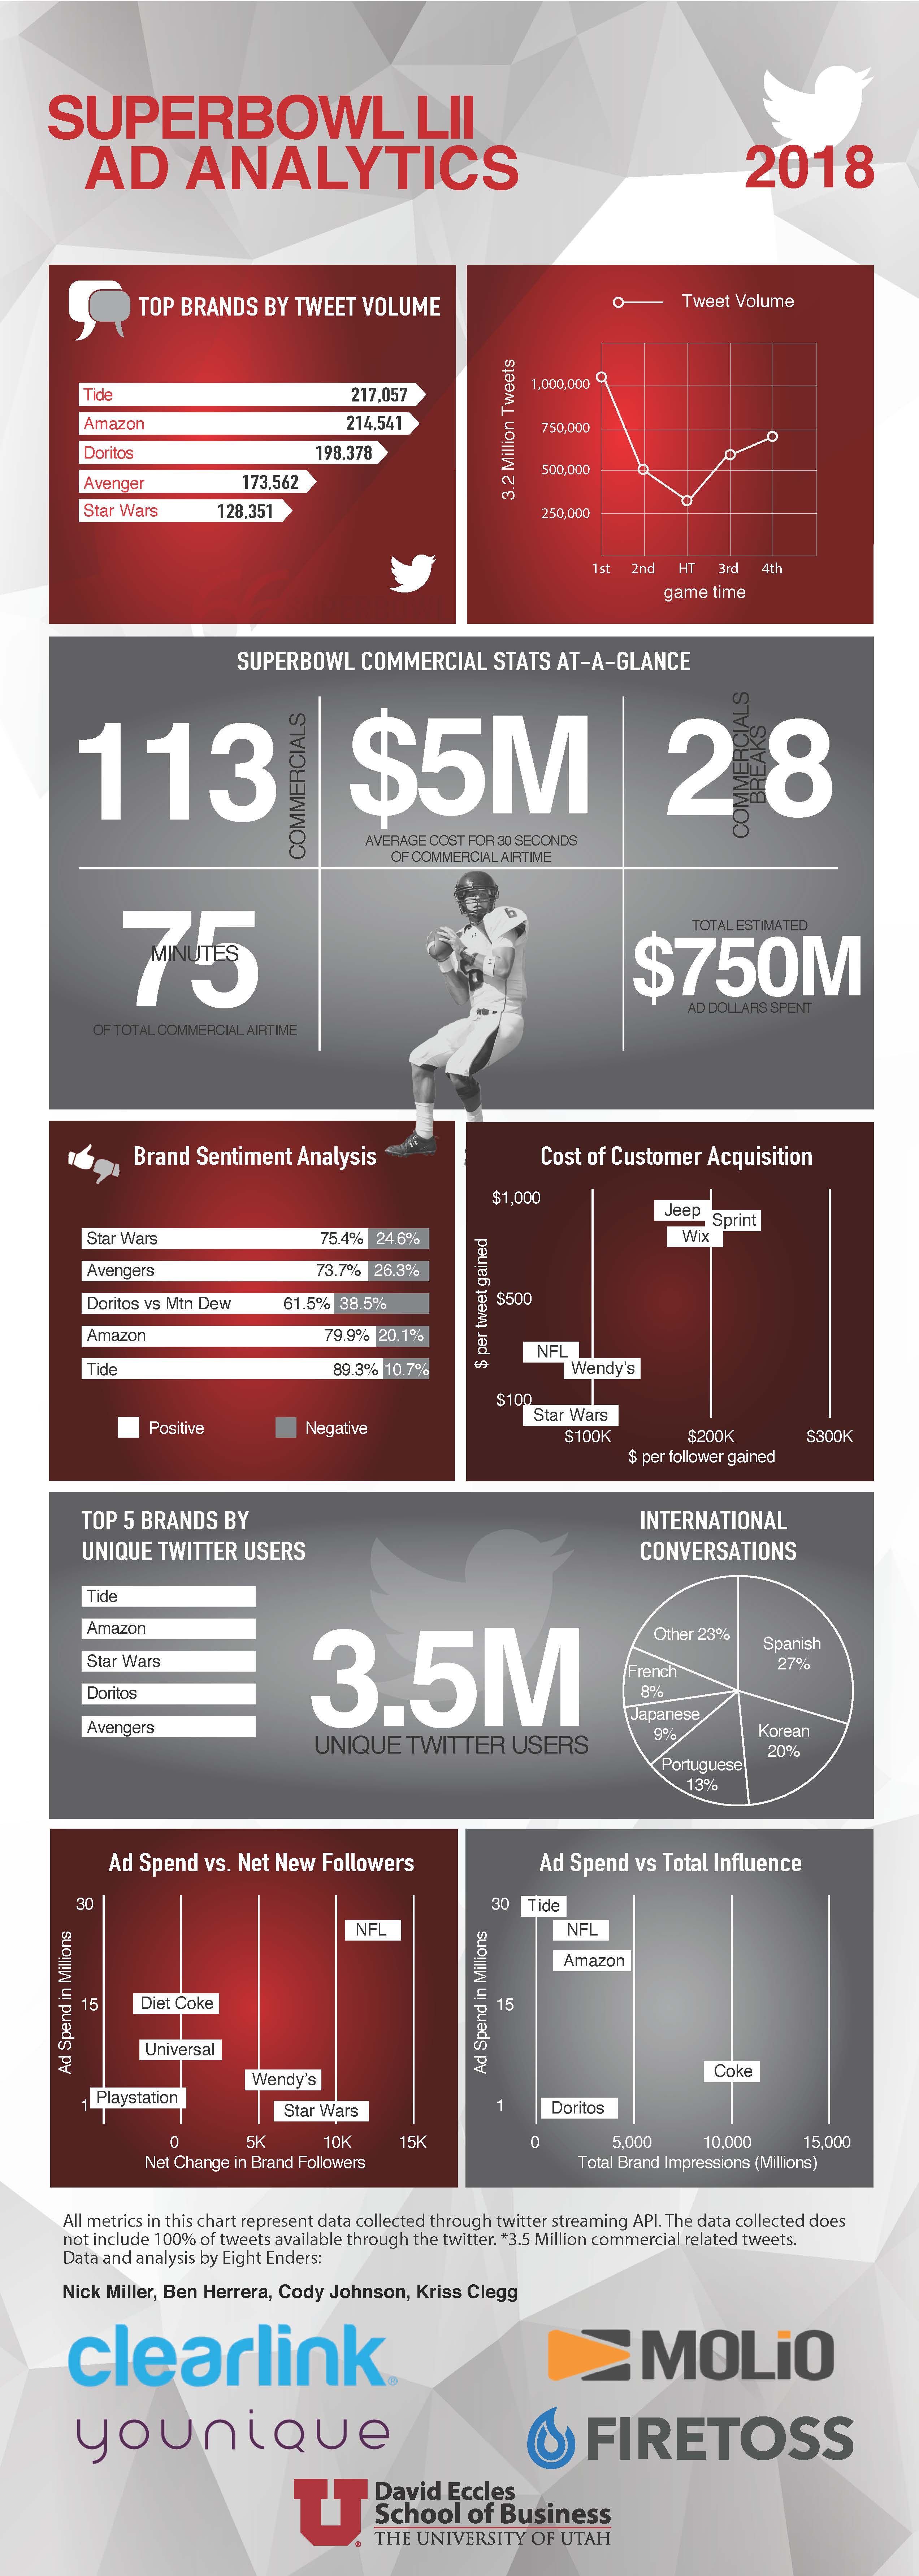 Infographic of Superbowl LII ad analytics